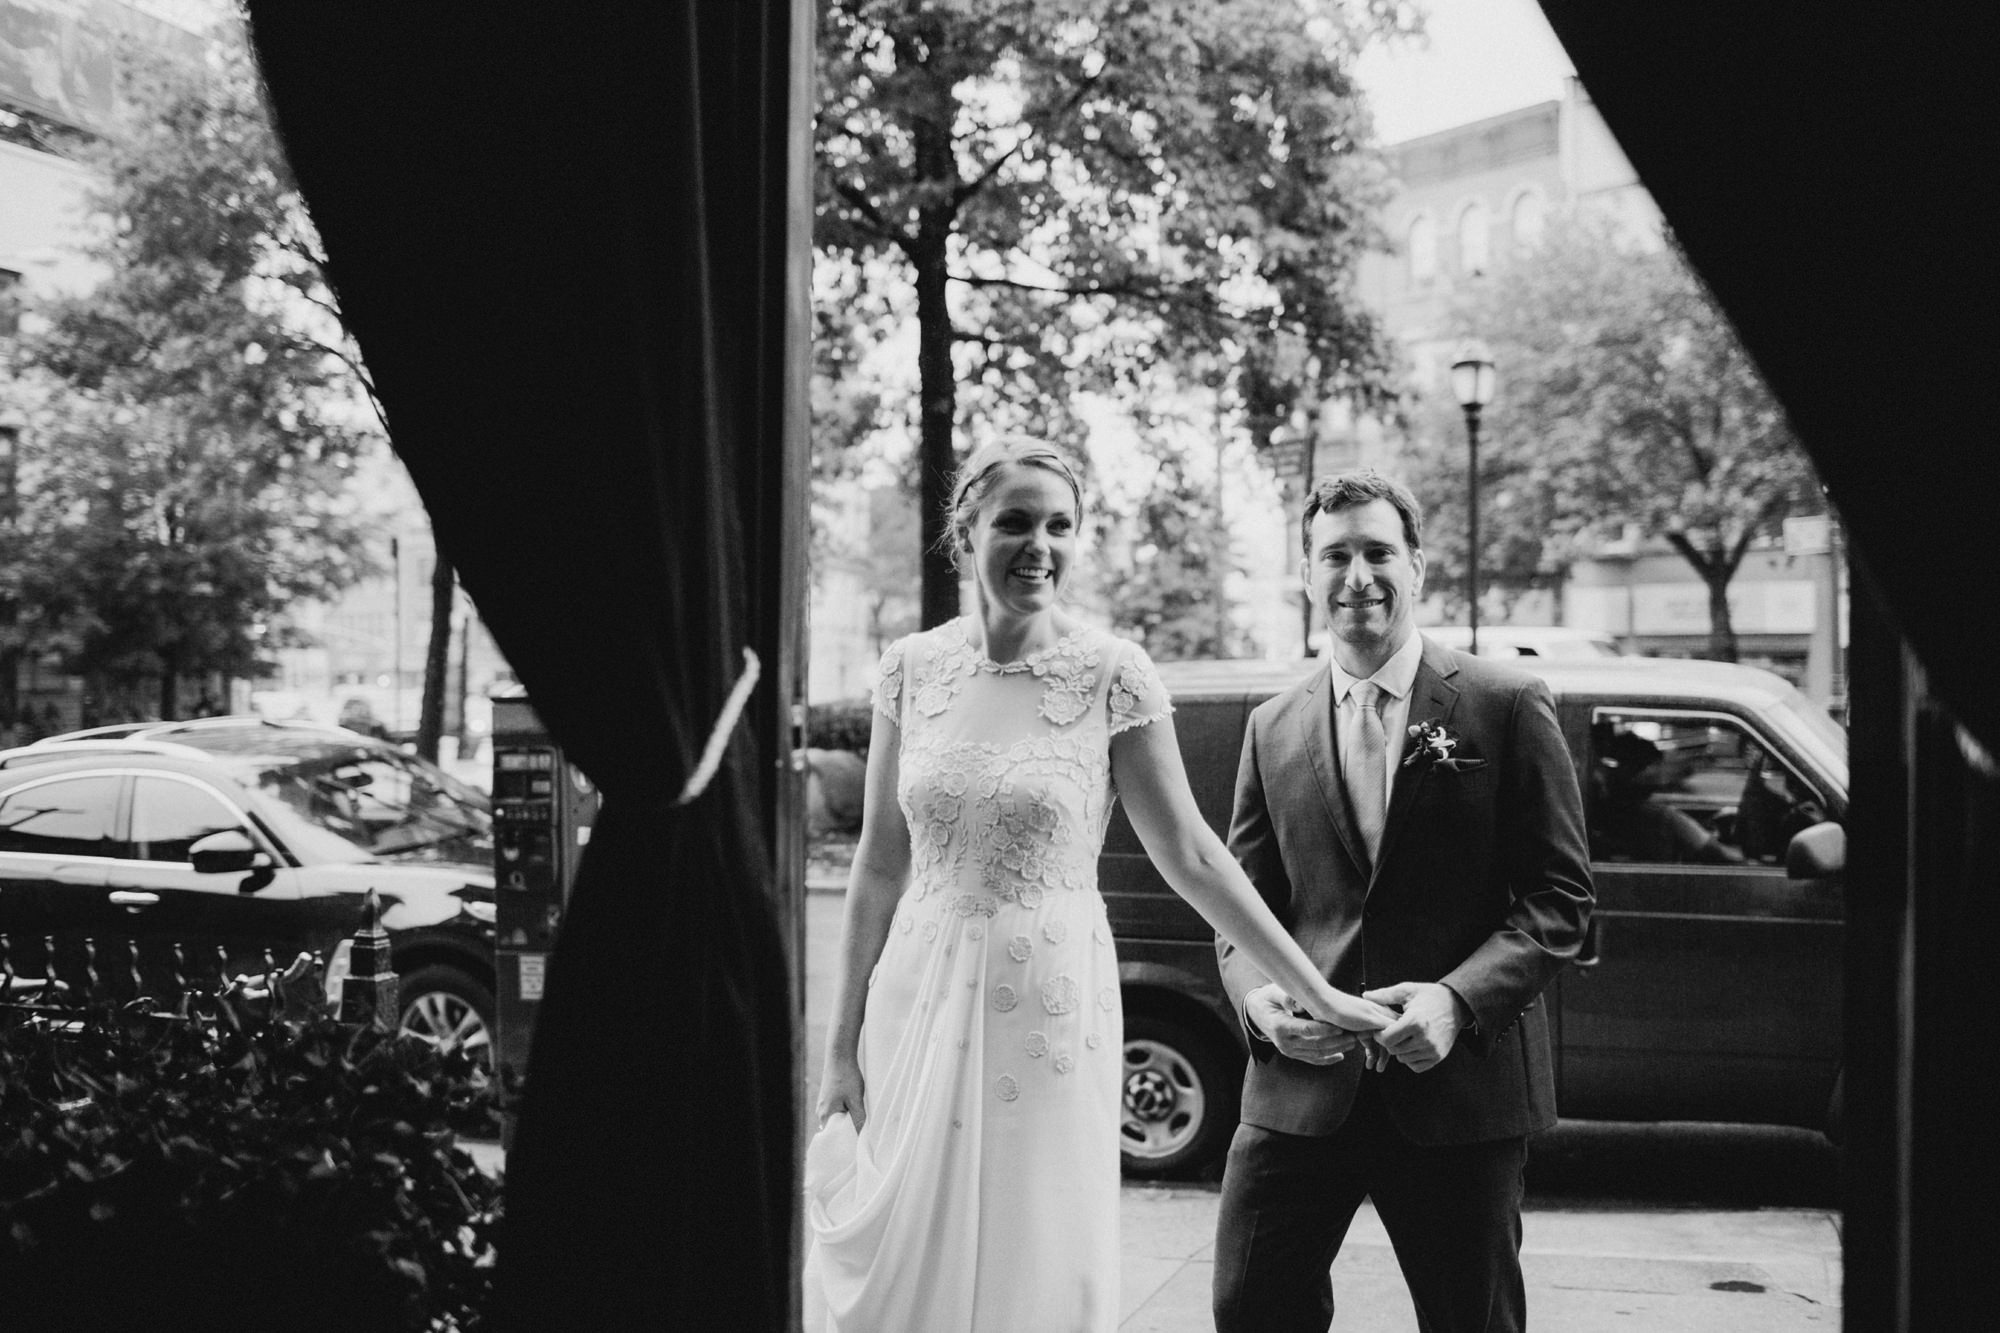 brooklyn_wedding_flatbushfarm_sammblake_017.jpg